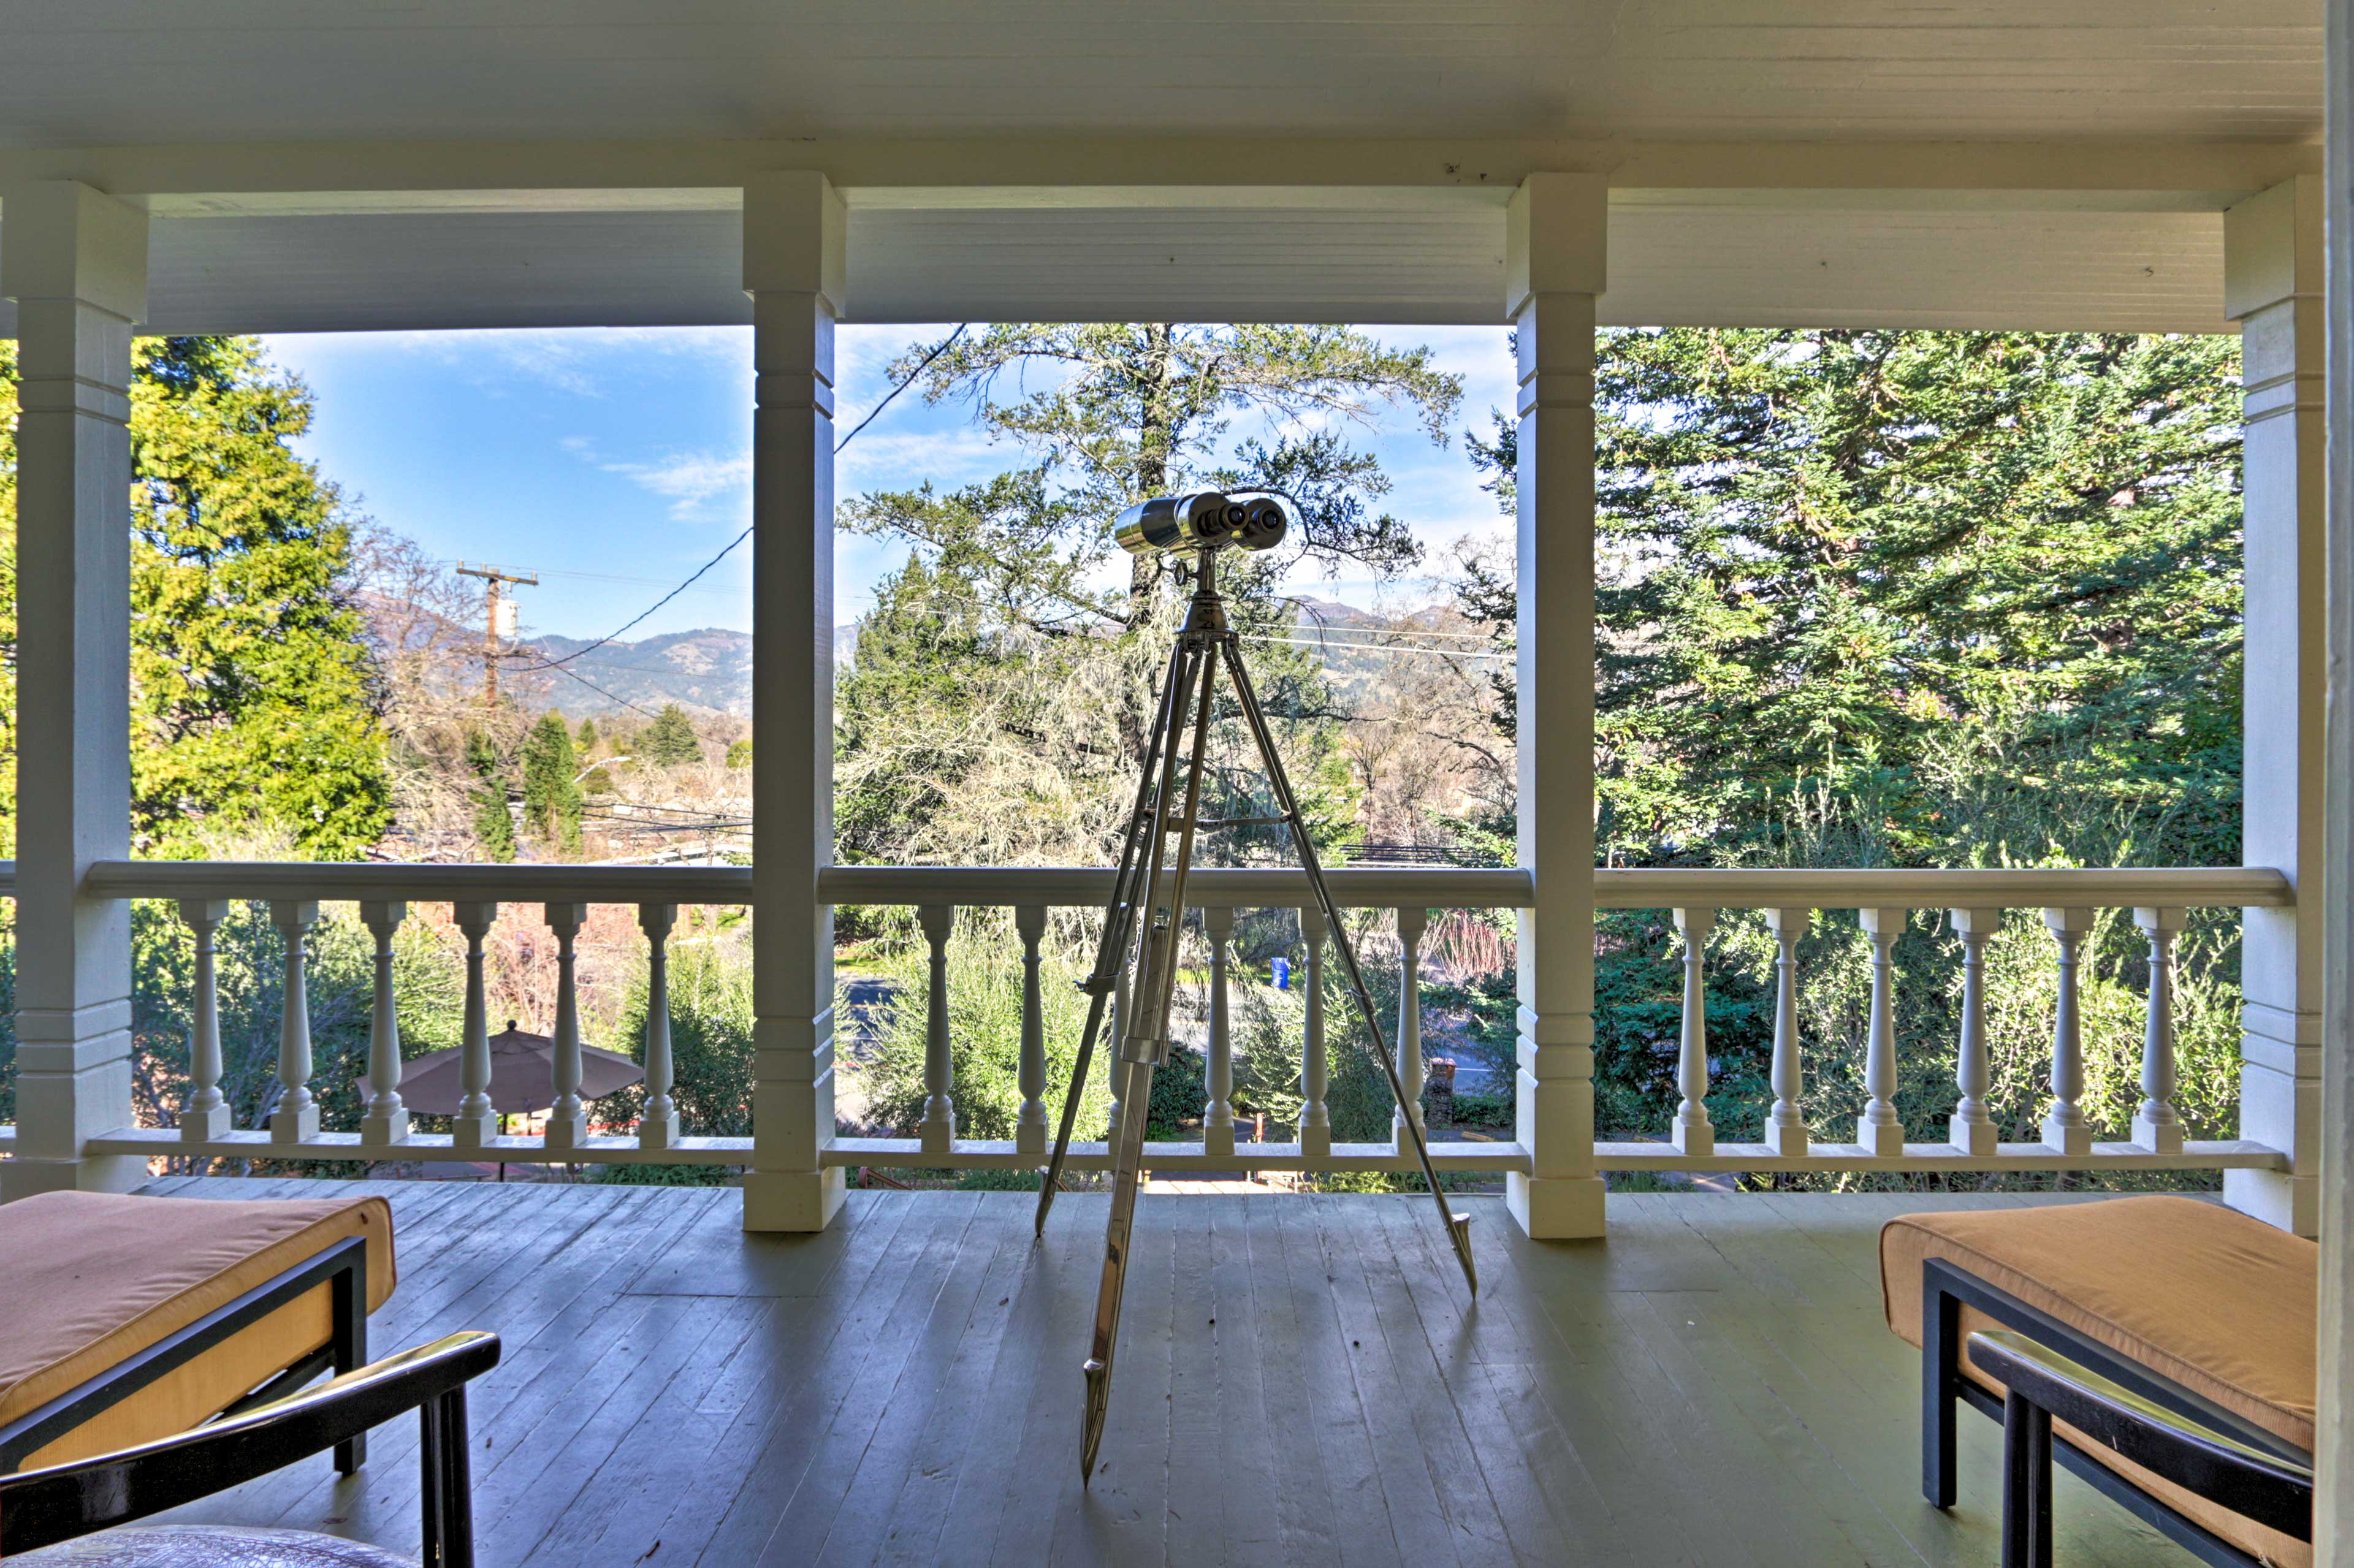 Take in marvelous views of the surrounding scenery from the deck.